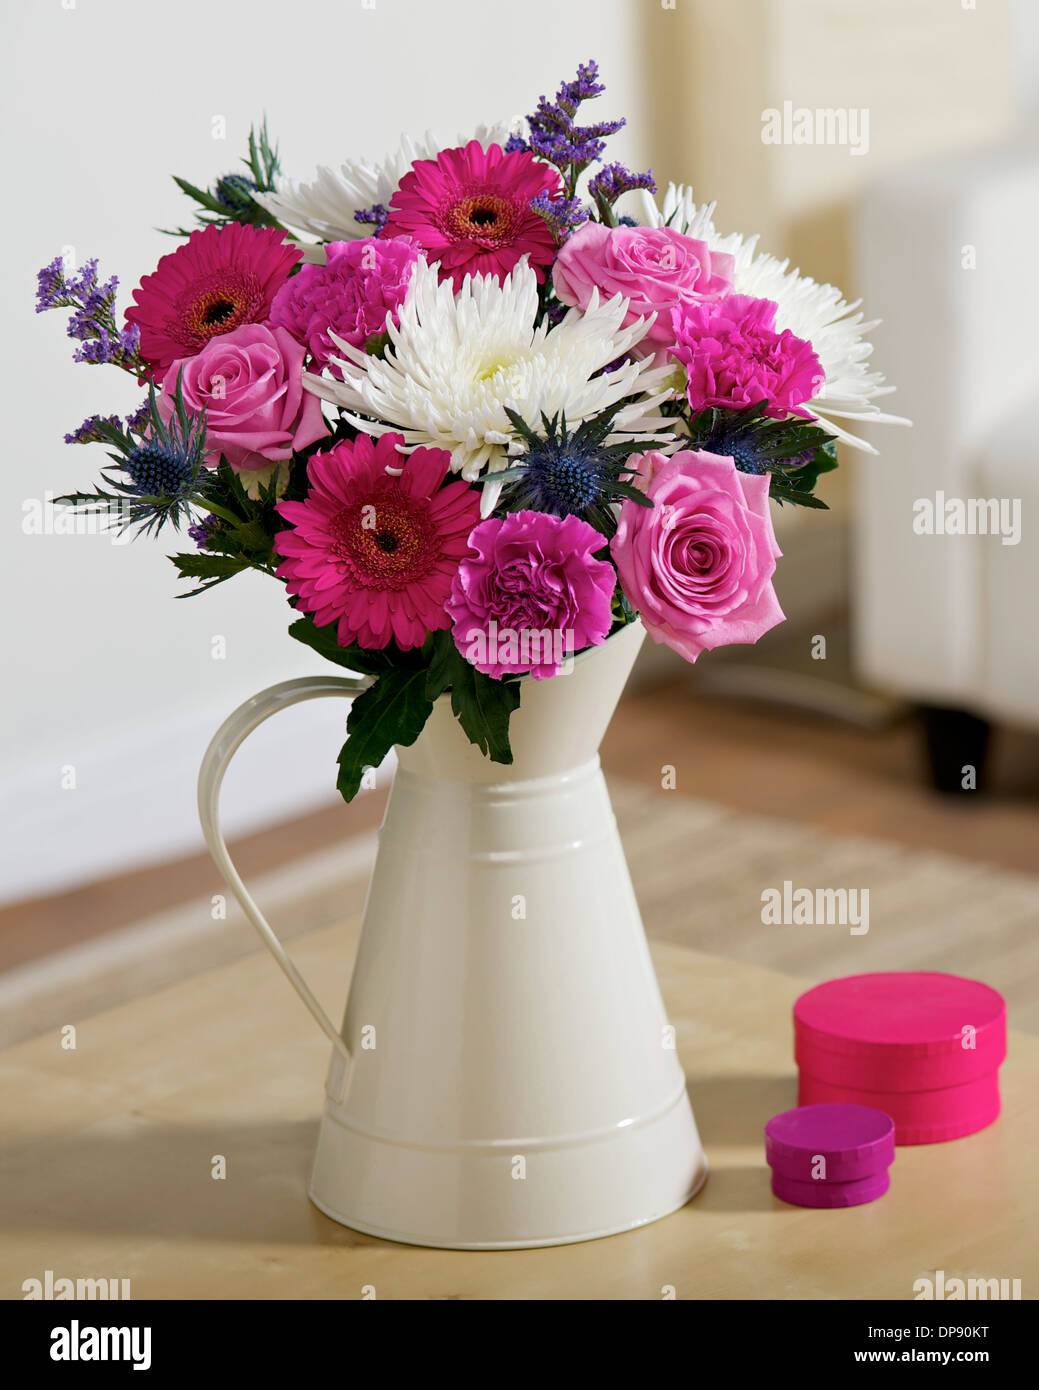 Bouquet Of Pink And White Flowers In A Cream Vase Or Jug In A Room